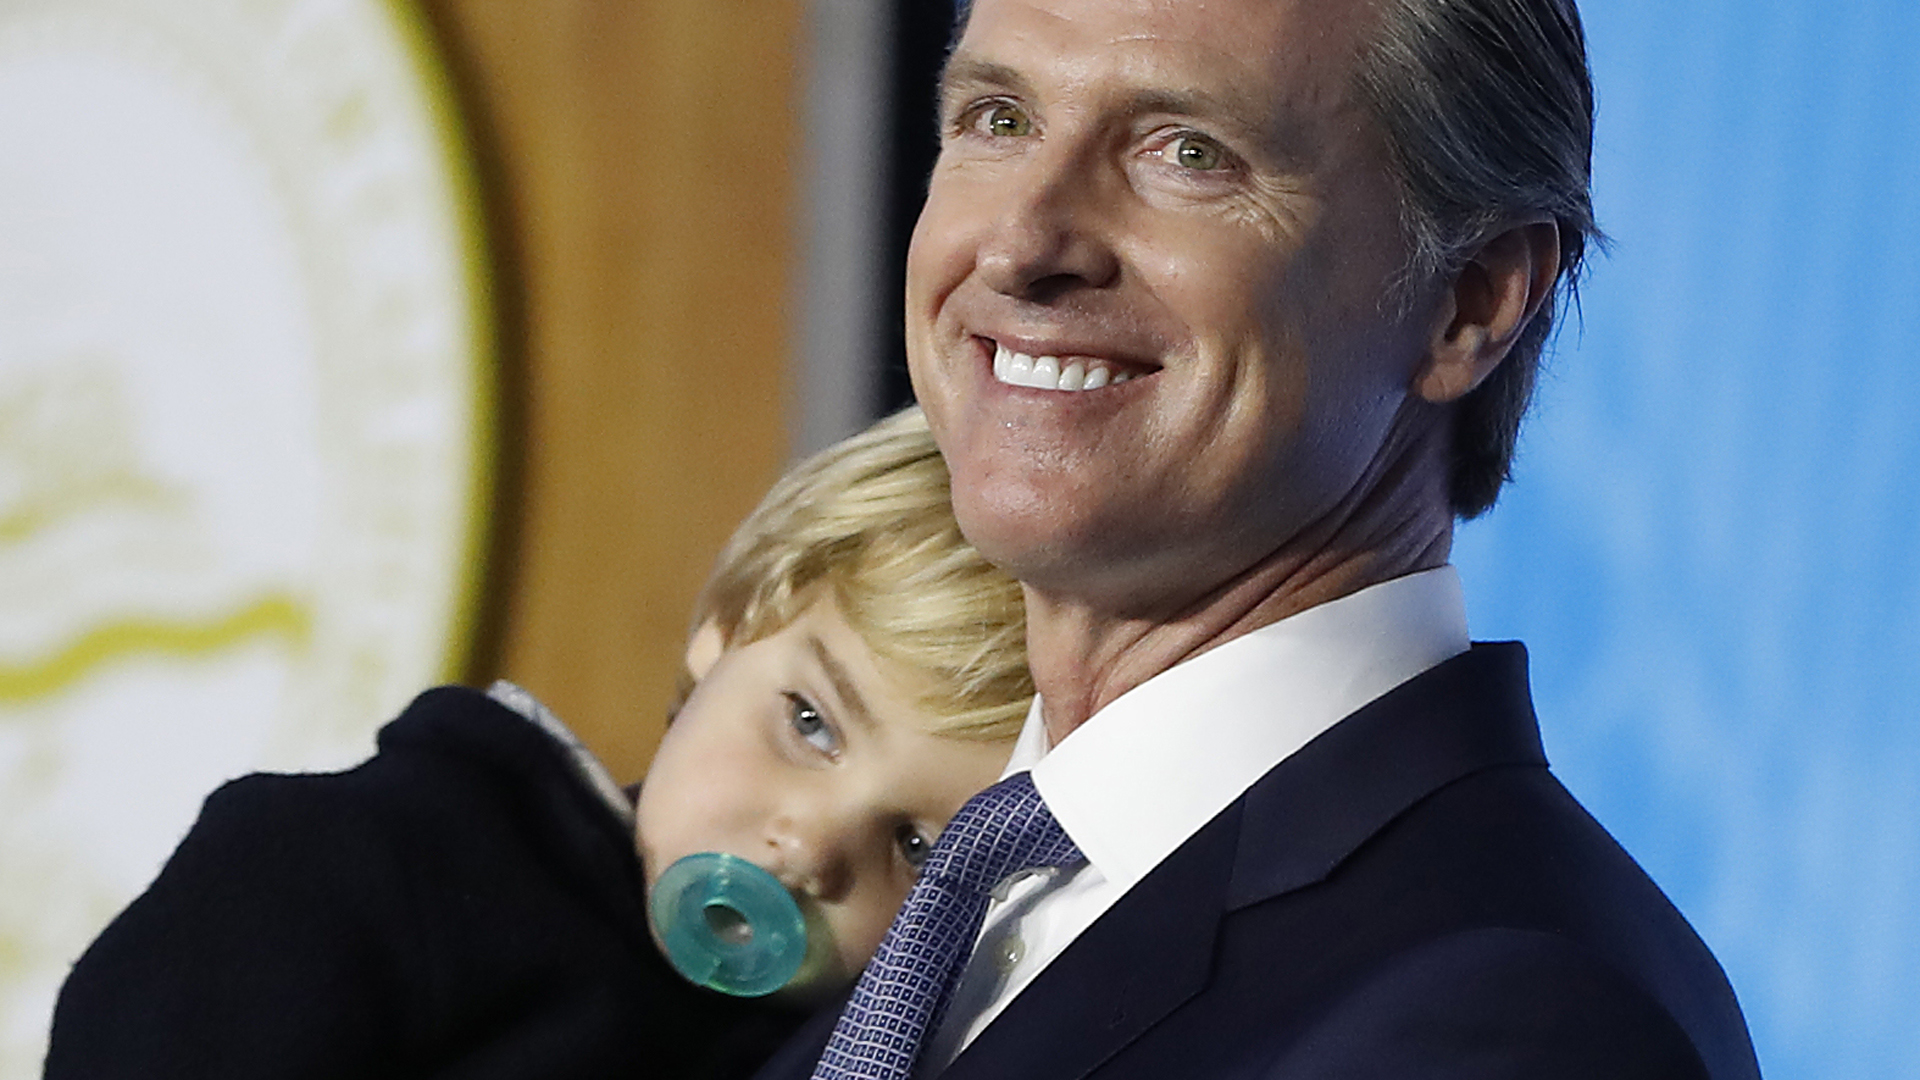 Gov. Gavin Newsom carries his 2-year-old son Dutch while delivering his inaugural address after being sworn in as the 40th governor of California on Jan. 7, 2019, in Sacramento. (Credit: Stephen Lam/Getty Images)